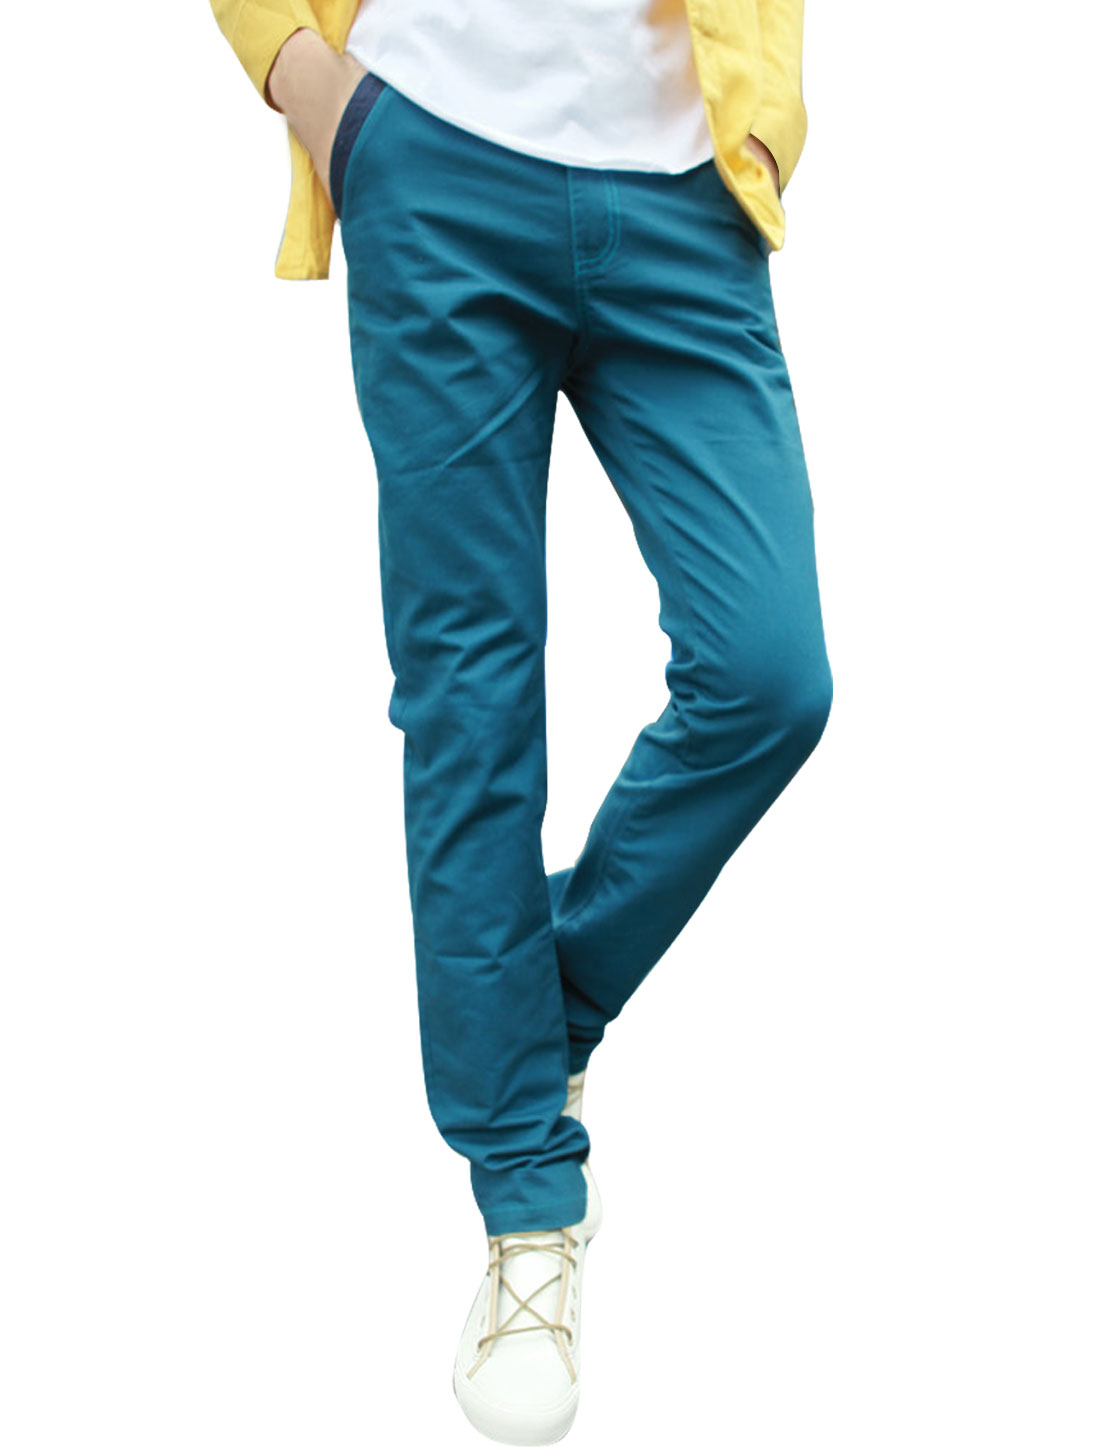 Men Waistband Loop Pockets Buttoned Closure Casual Pants Blue W32